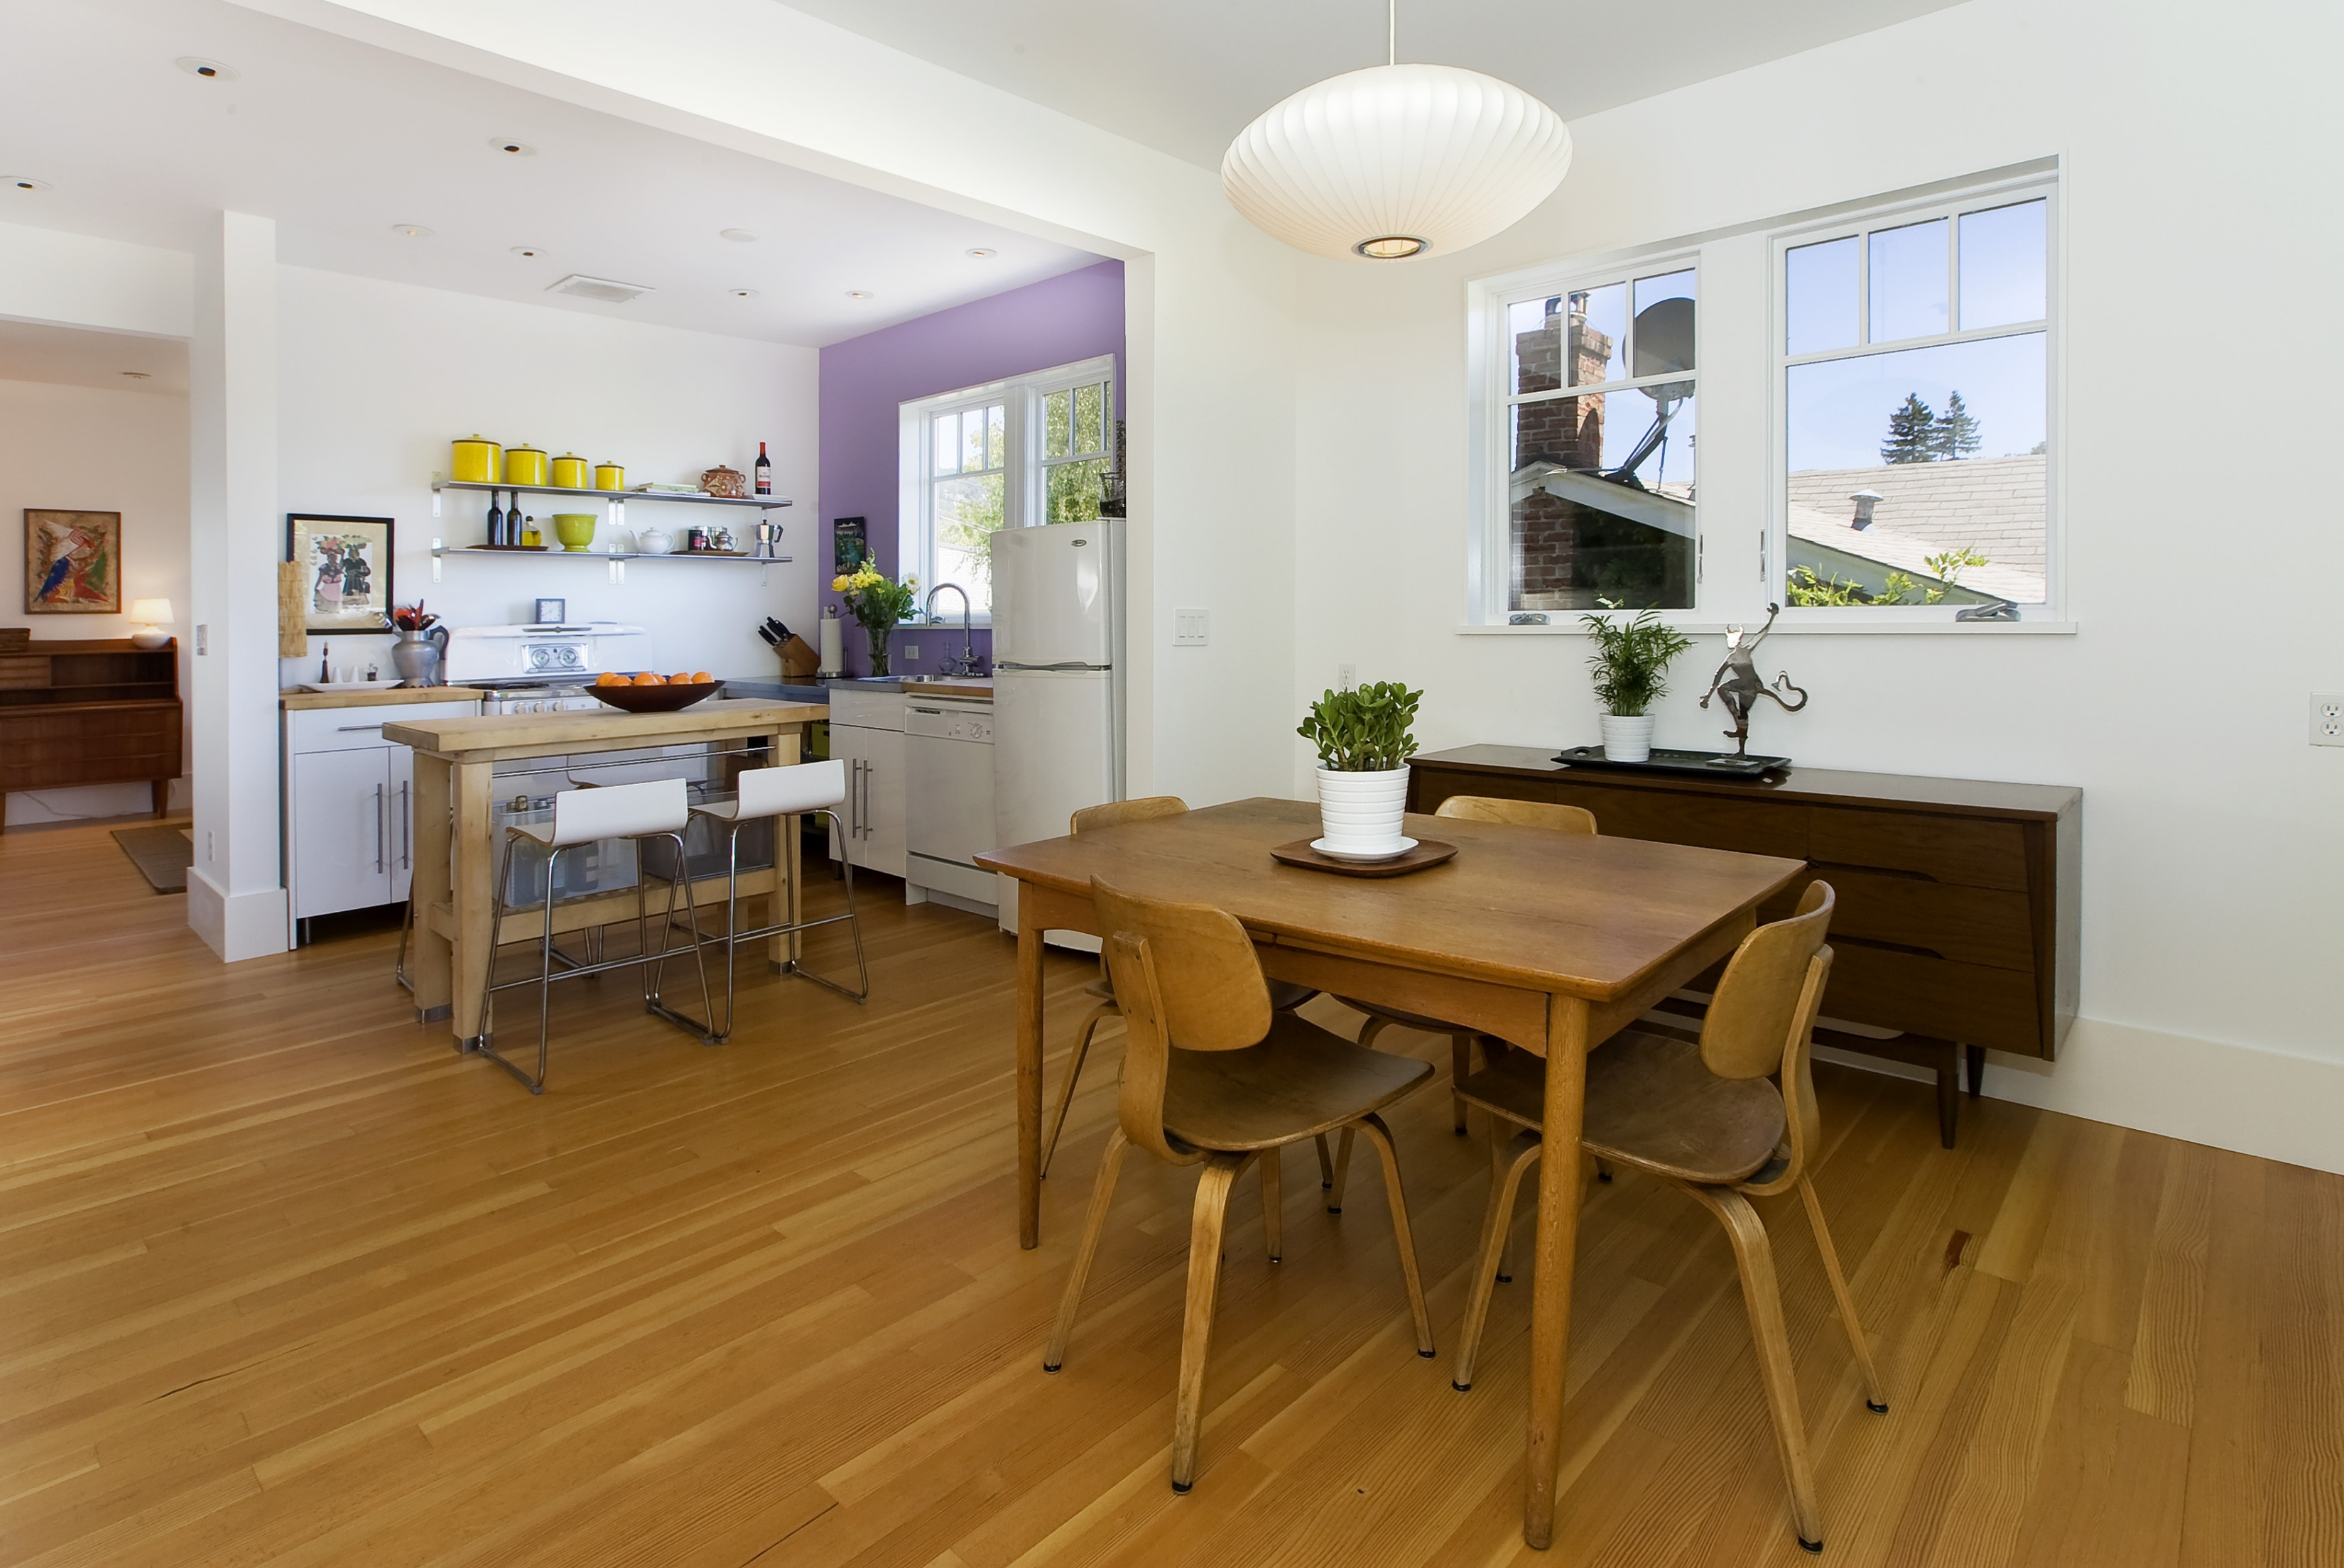 Tropical Modern Bungalow kitchen dining room